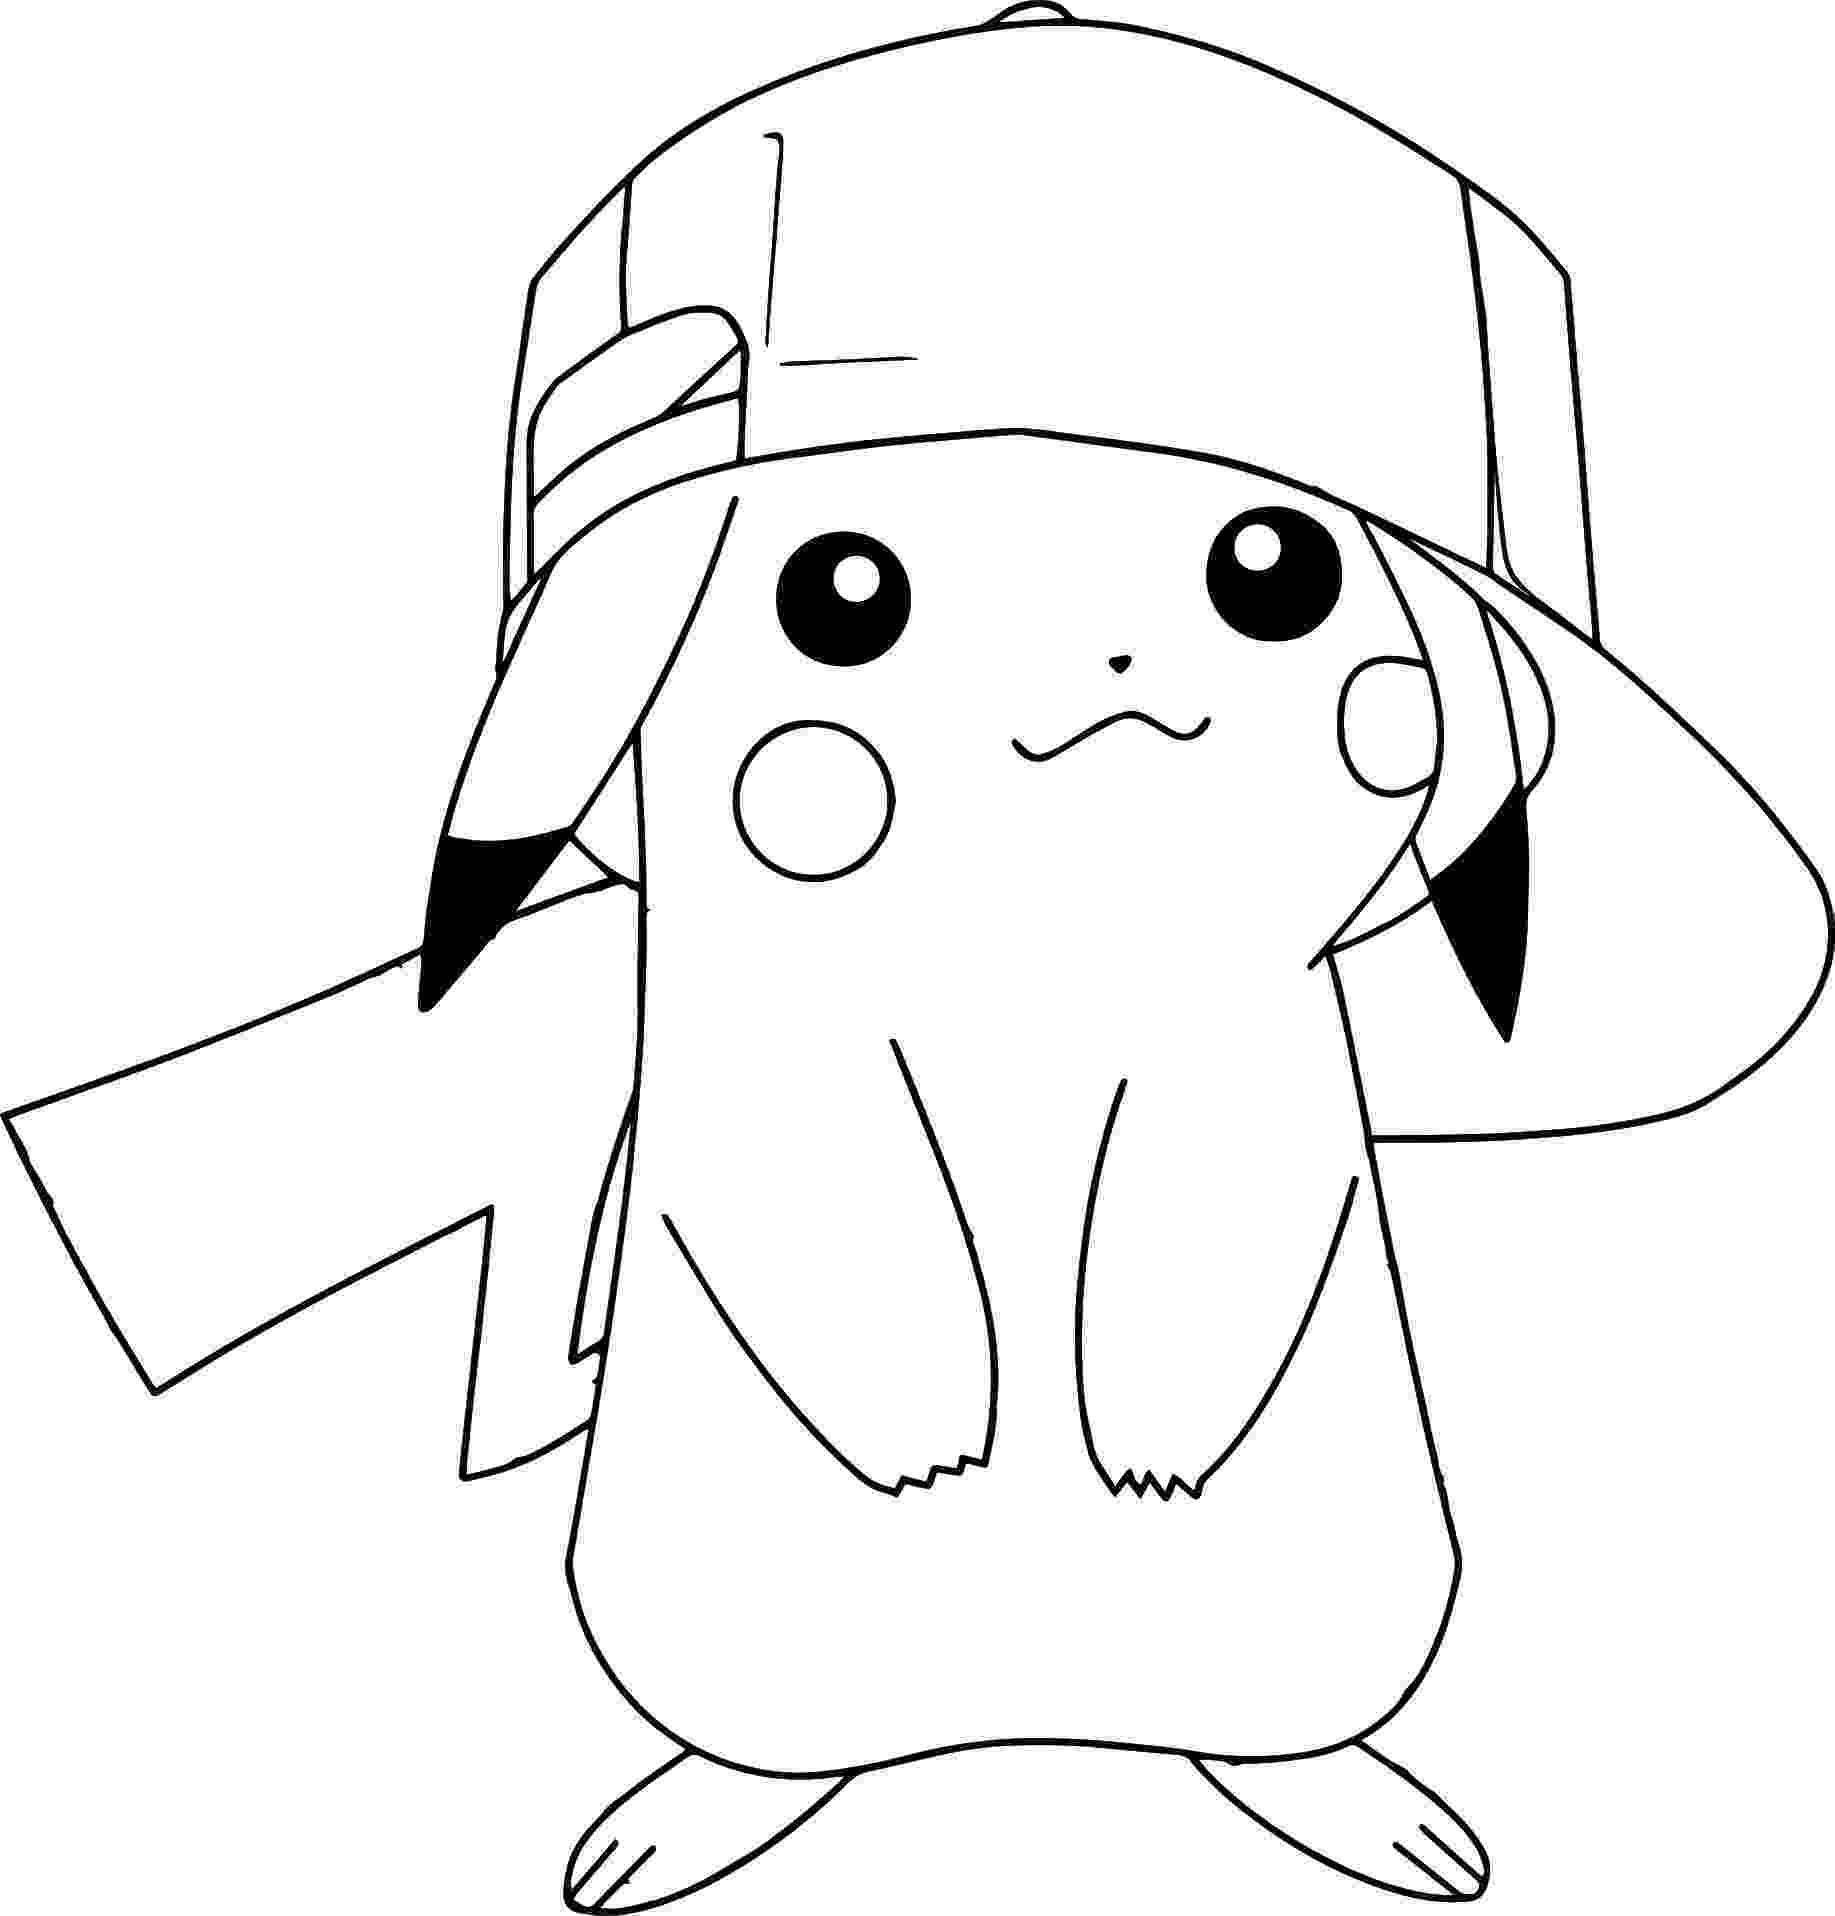 cute pikachu coloring pages baby pikachu coloring page free coloring pages online coloring pikachu cute pages